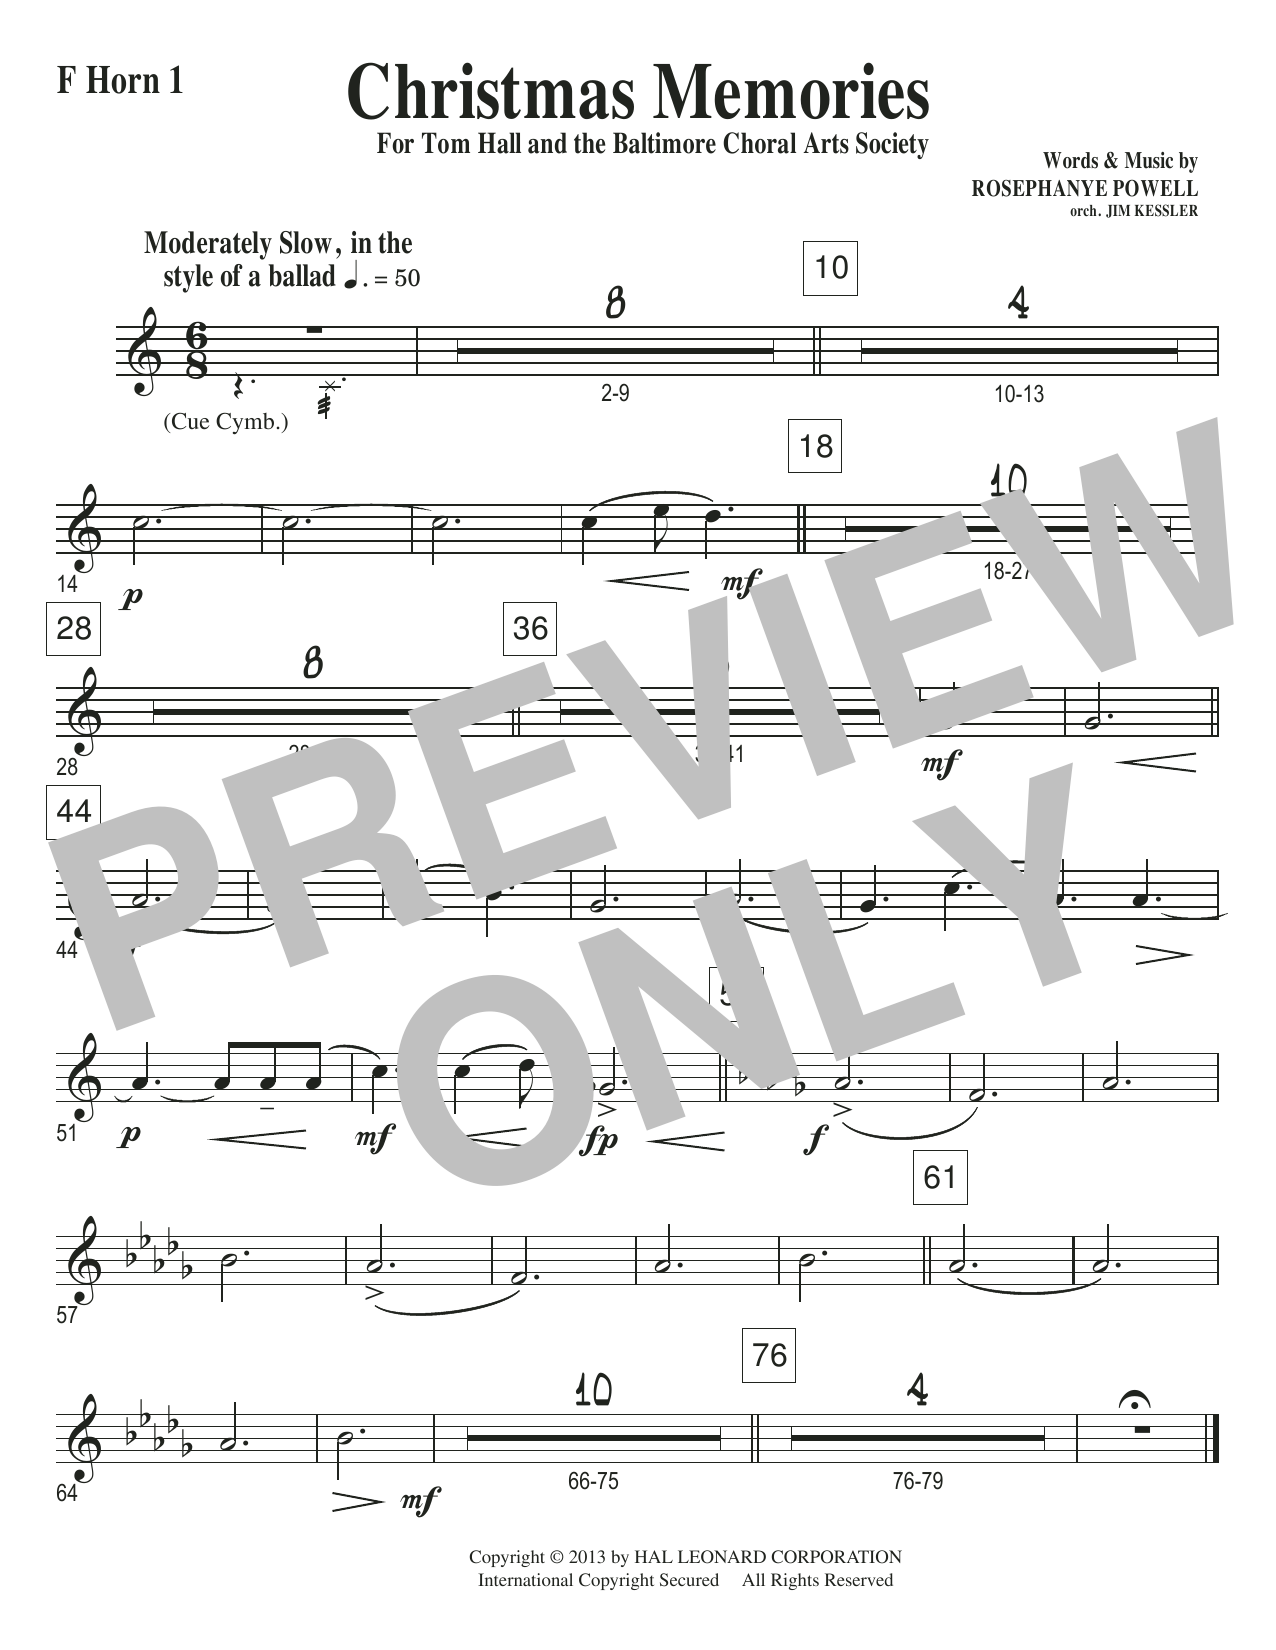 Christmas Memories - F Horn 1 Sheet Music